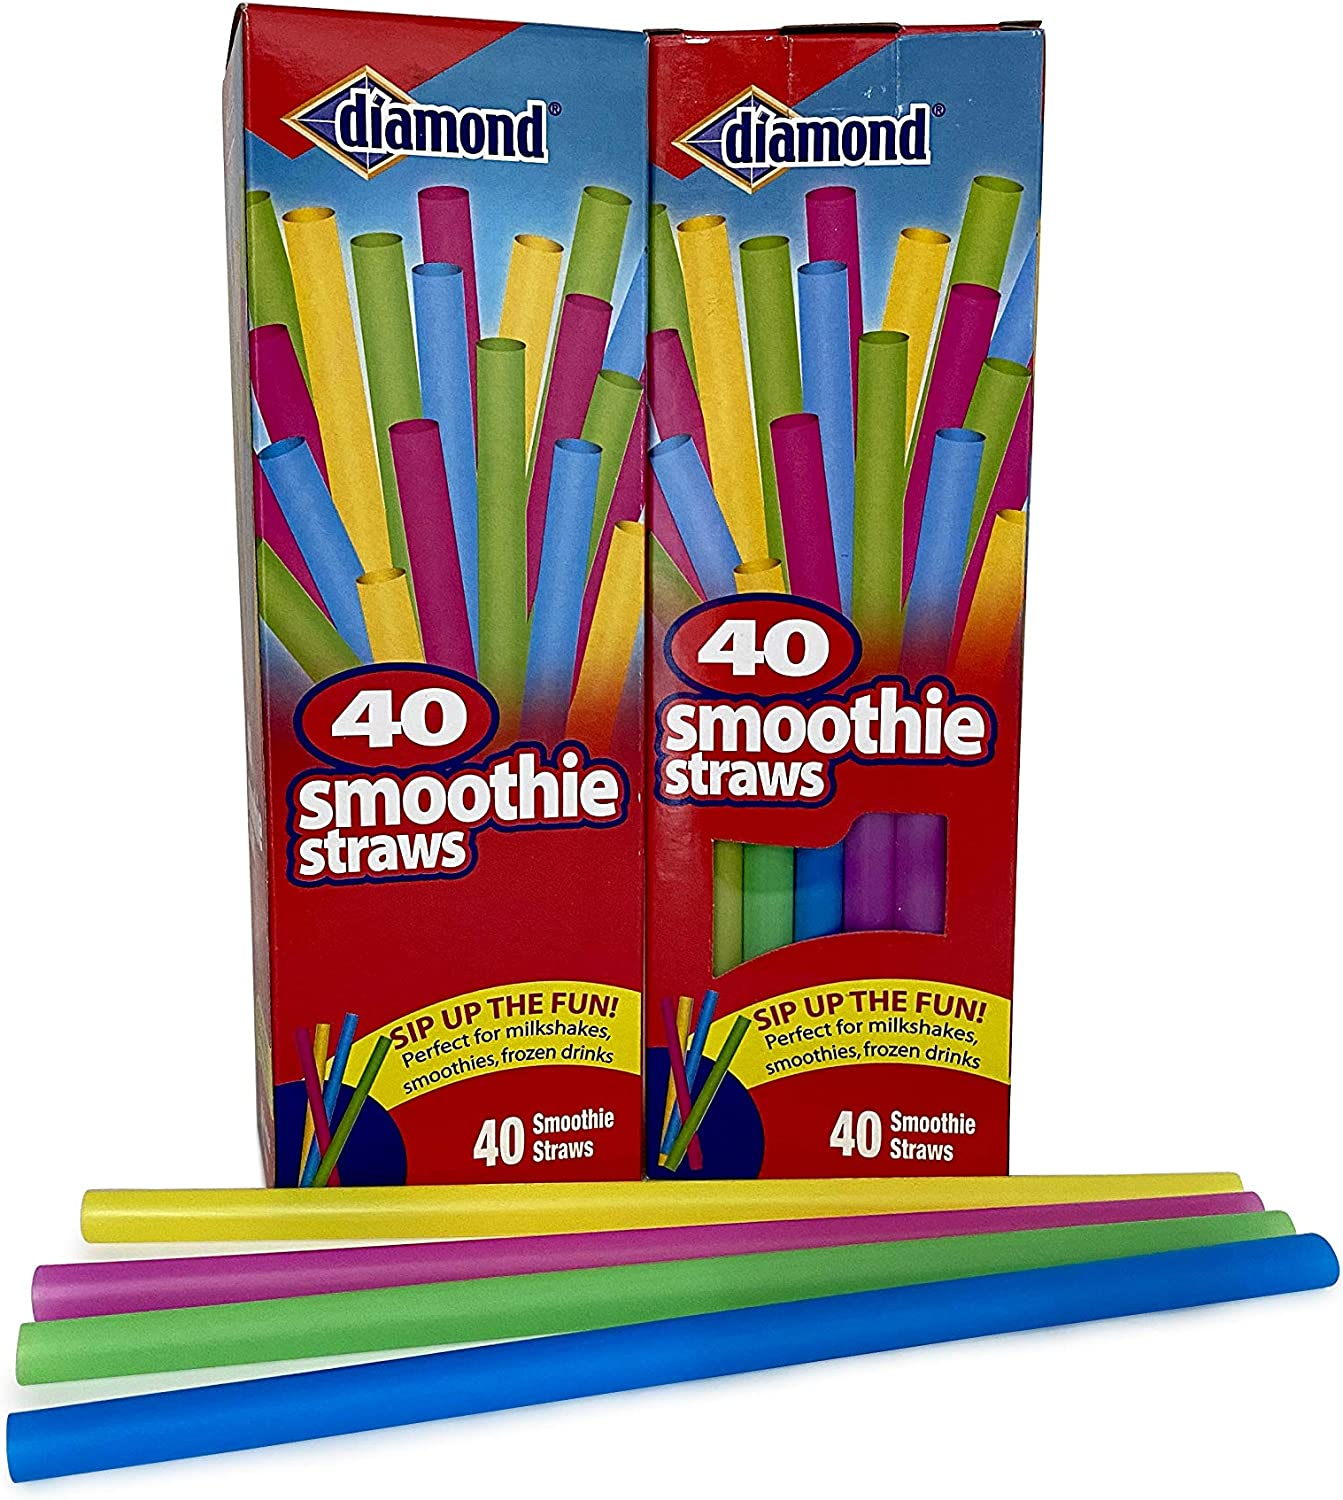 Diamond Neon Max 49% OFF Smoothie Straws 40 of Pack 2 Cheap Assorted Ct